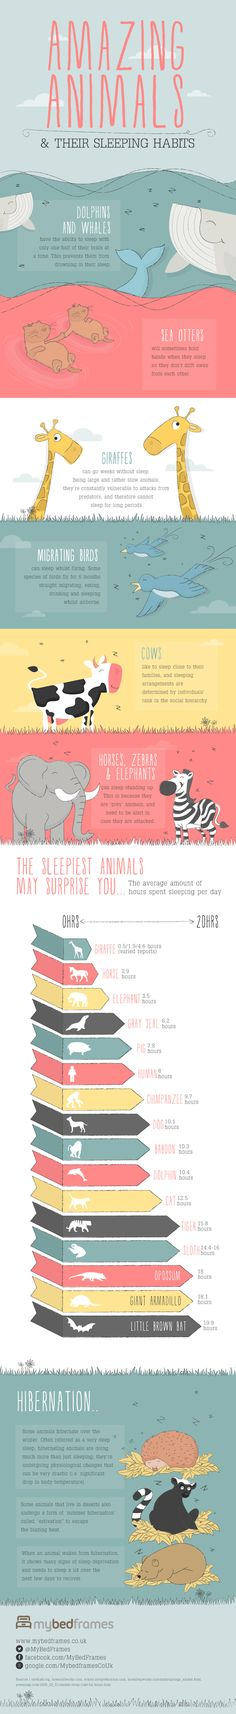 The Surprising And Fascinating Sleeping Habits Of Animals